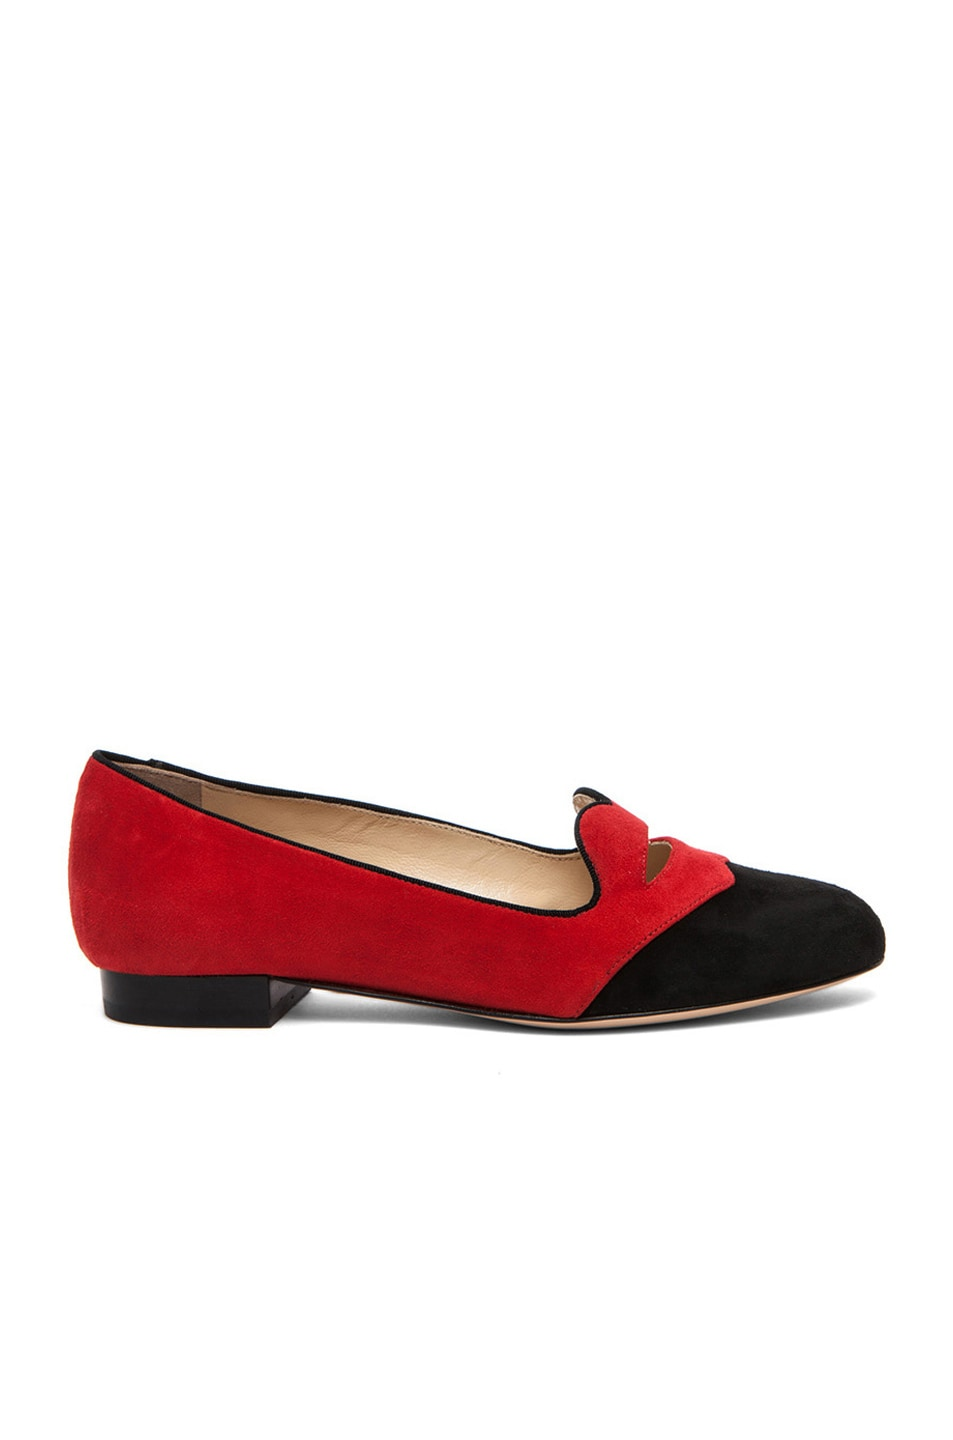 Image 2 of Charlotte Olympia Bisoux Suede Flats in Red & Black